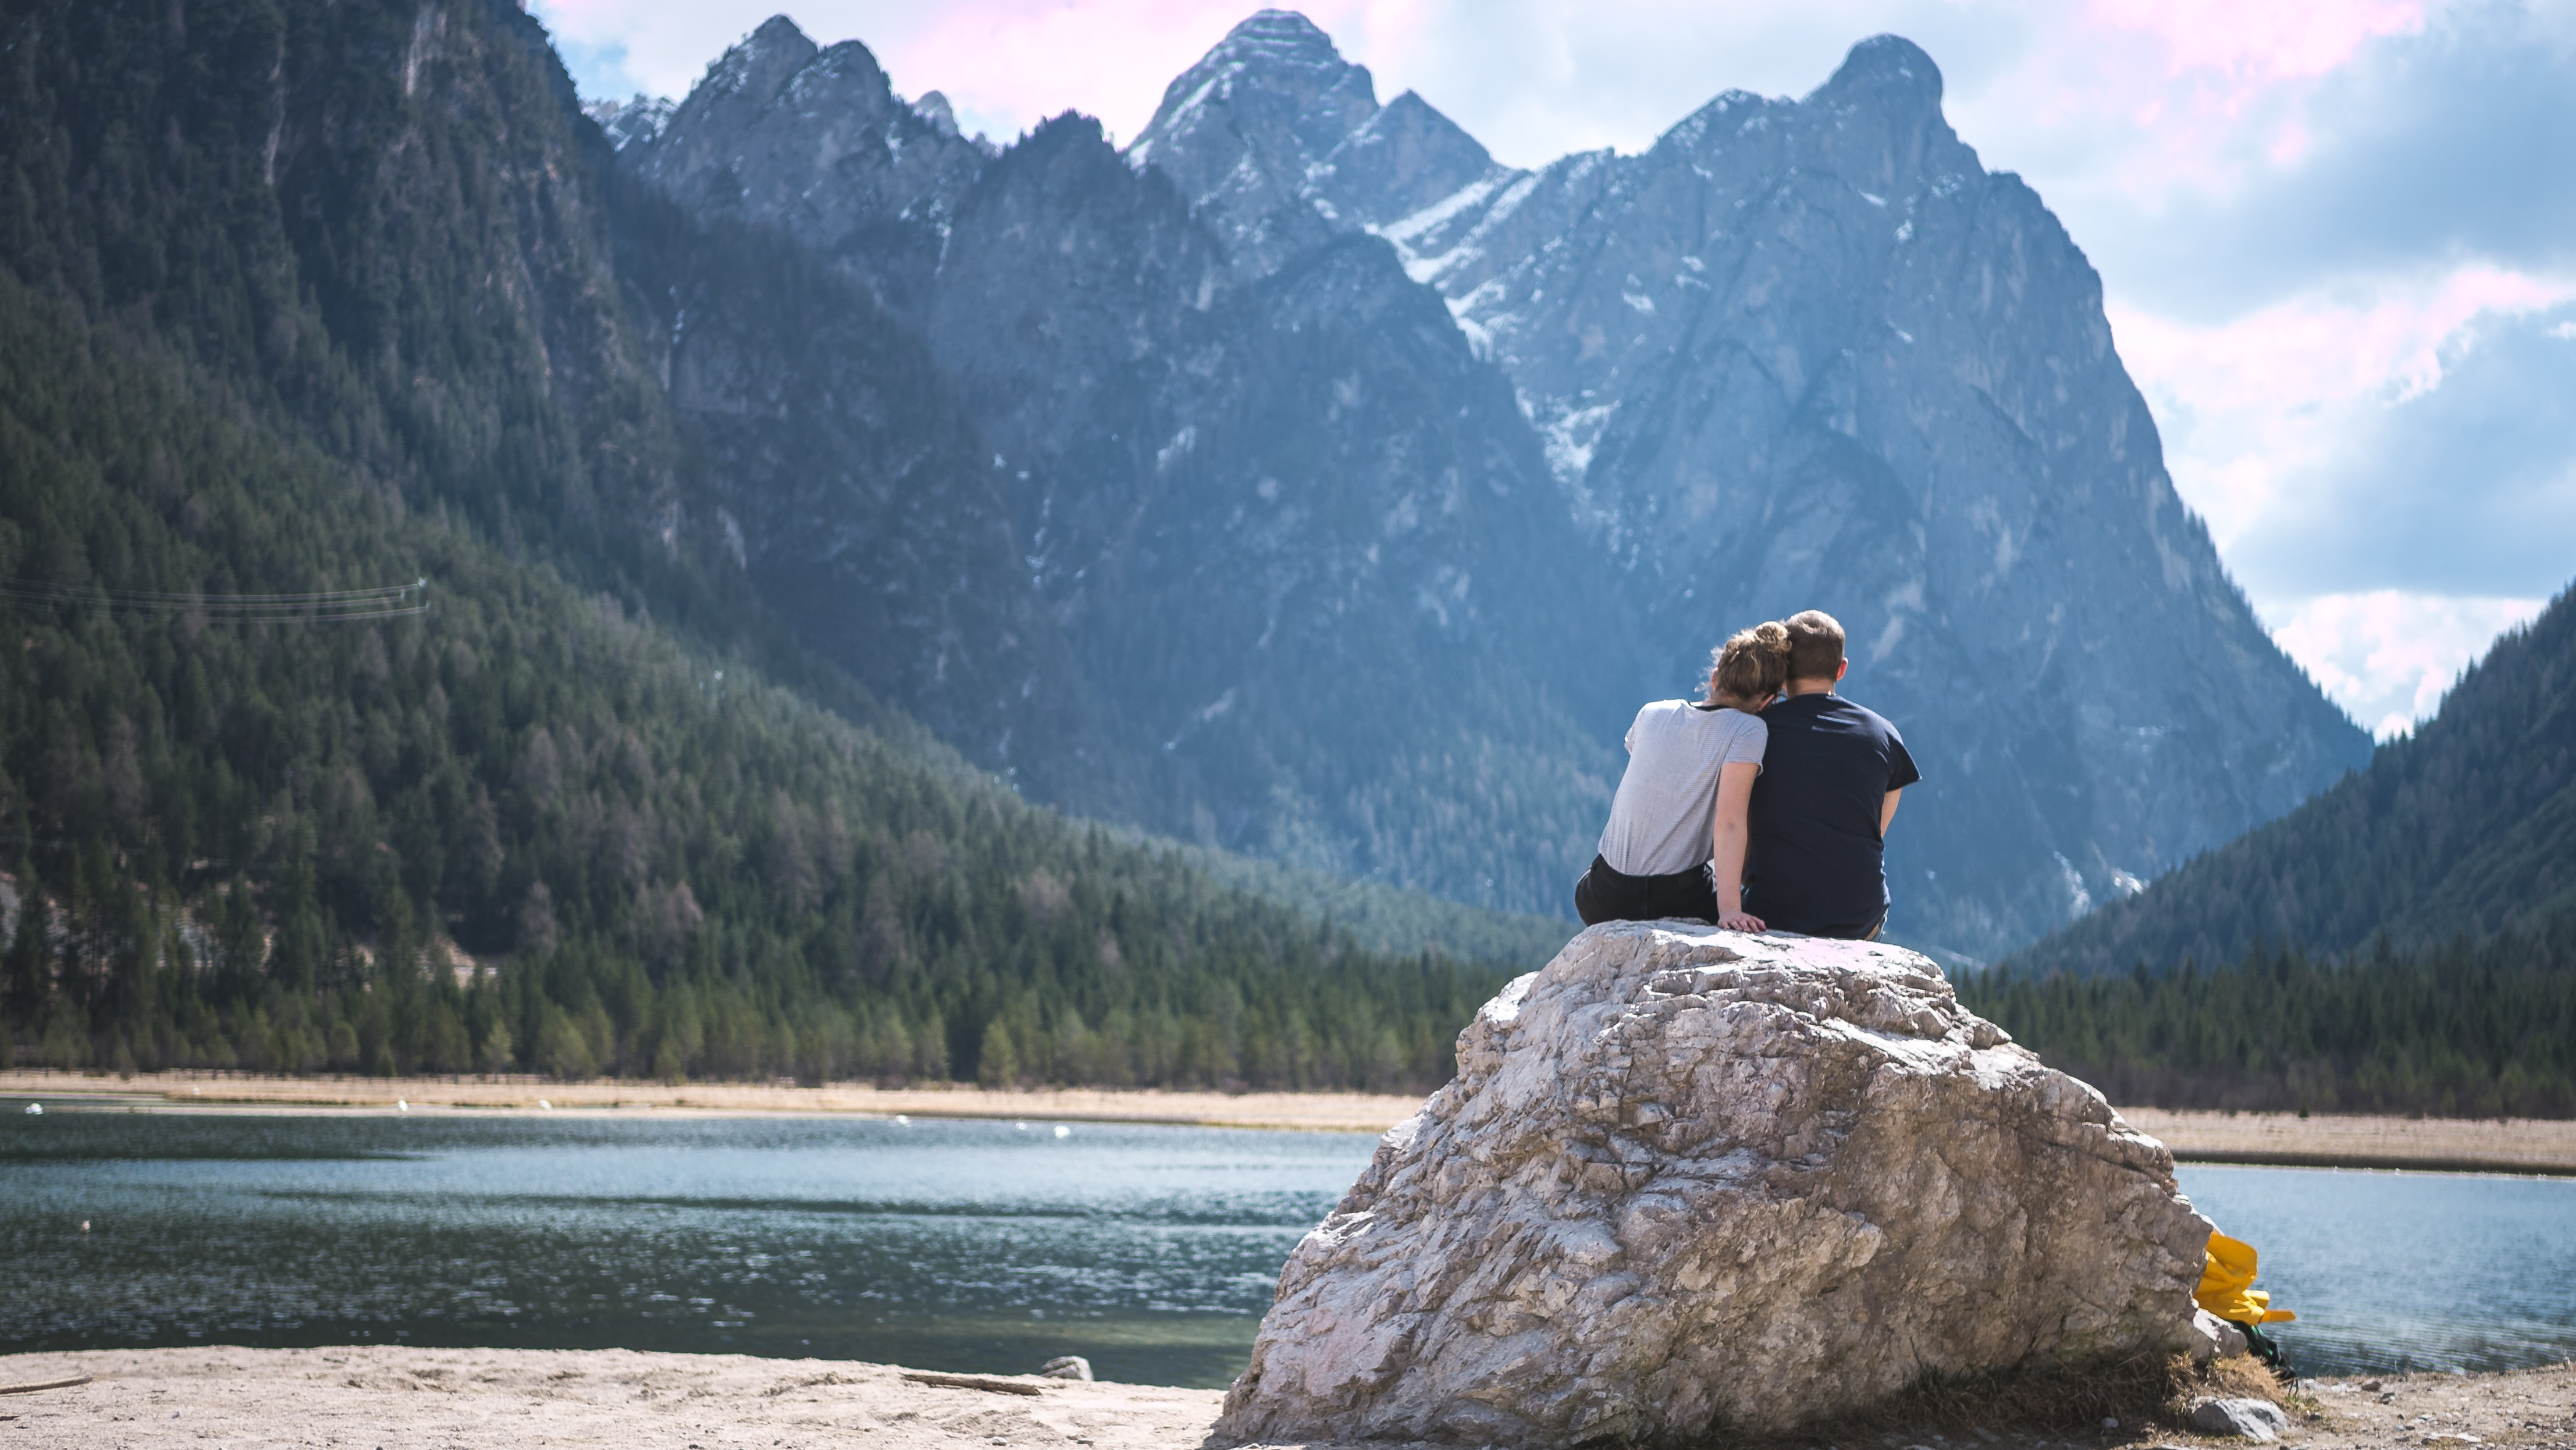 man and woman sitting on rock near body of water and mountain during daytime